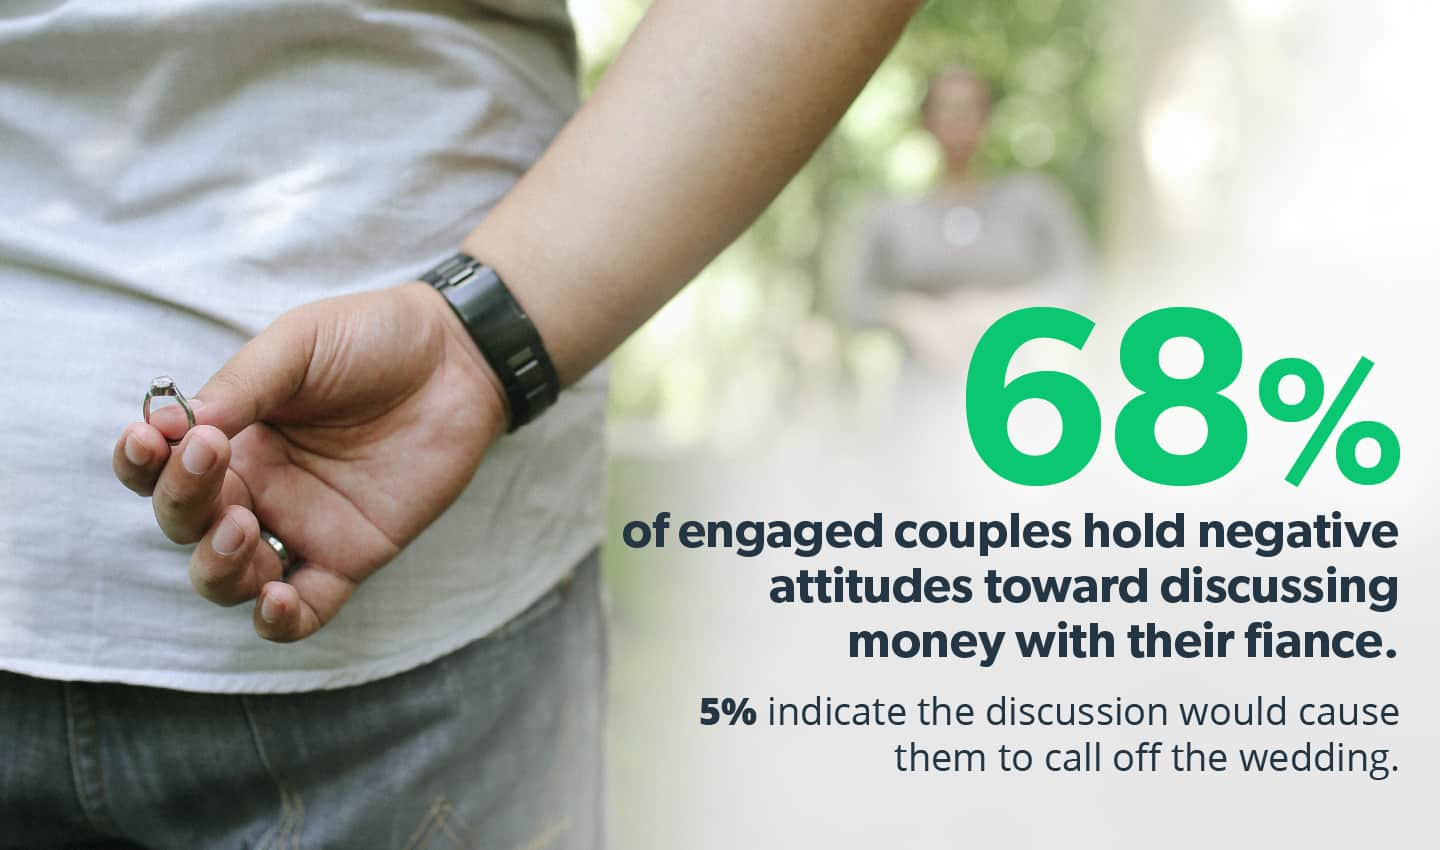 68% of engaged couples hold negative attitudes towards discussing money with their fiance.